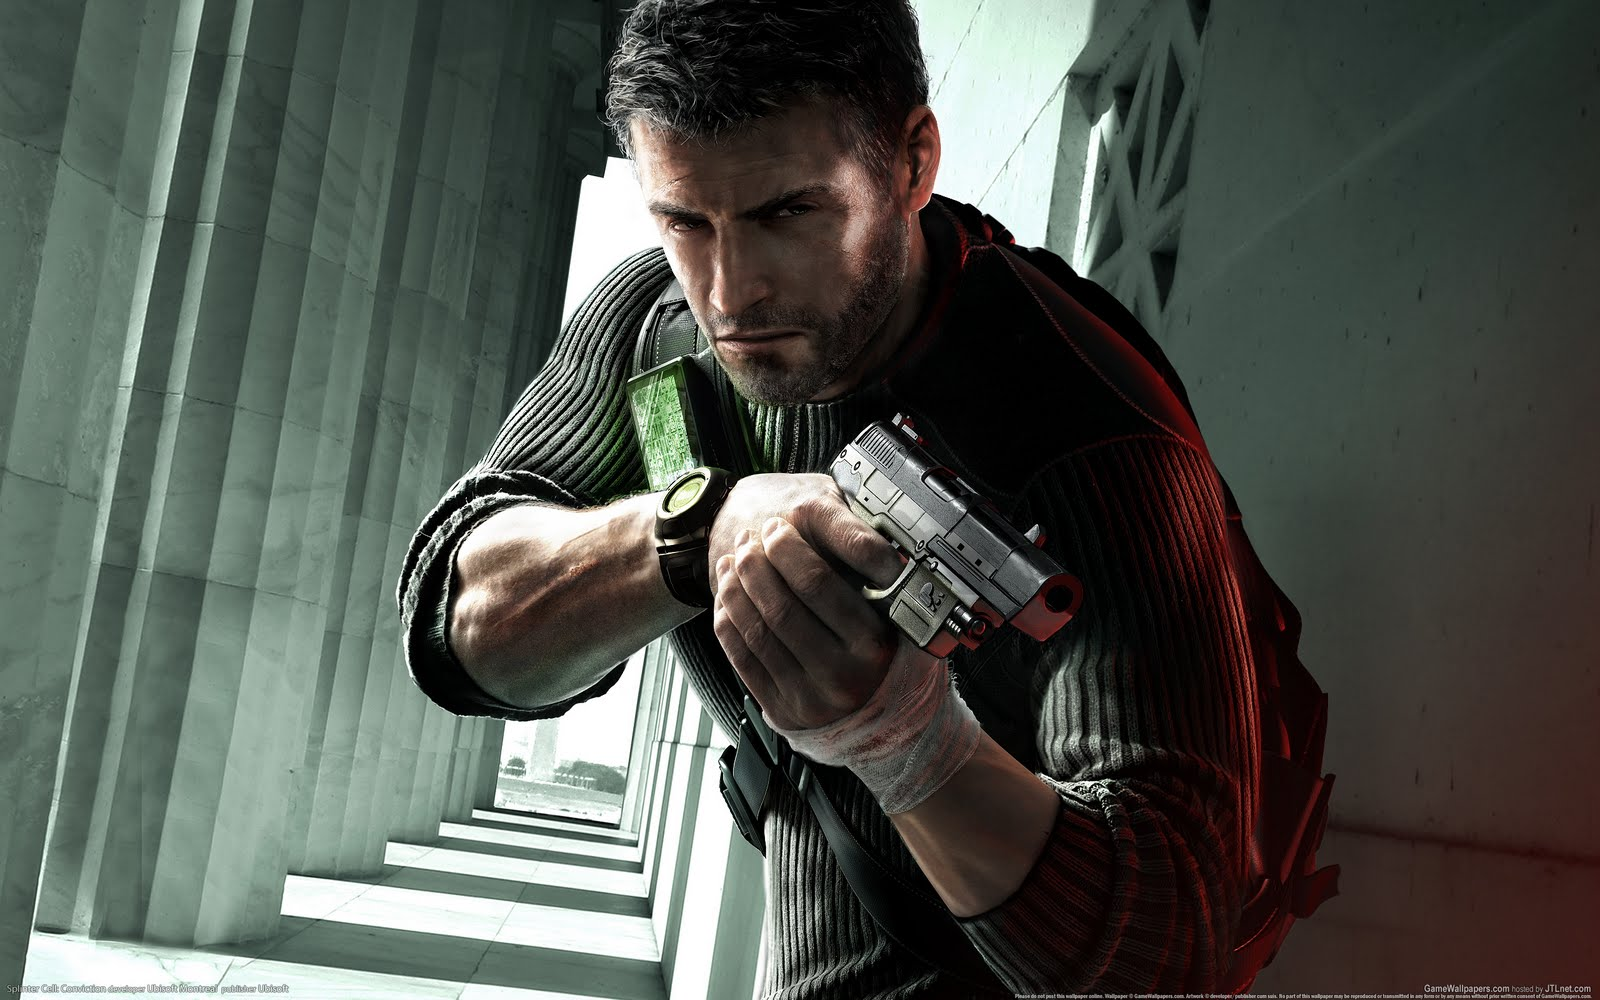 http://4.bp.blogspot.com/_3VnbSvbL2tE/TCA-wDoxCzI/AAAAAAAAATw/uB15UABXhWU/s1600/4a4f4209_7991fcc6_wallpaper_splinter_cell_conviction_04_2560x1600.jpg